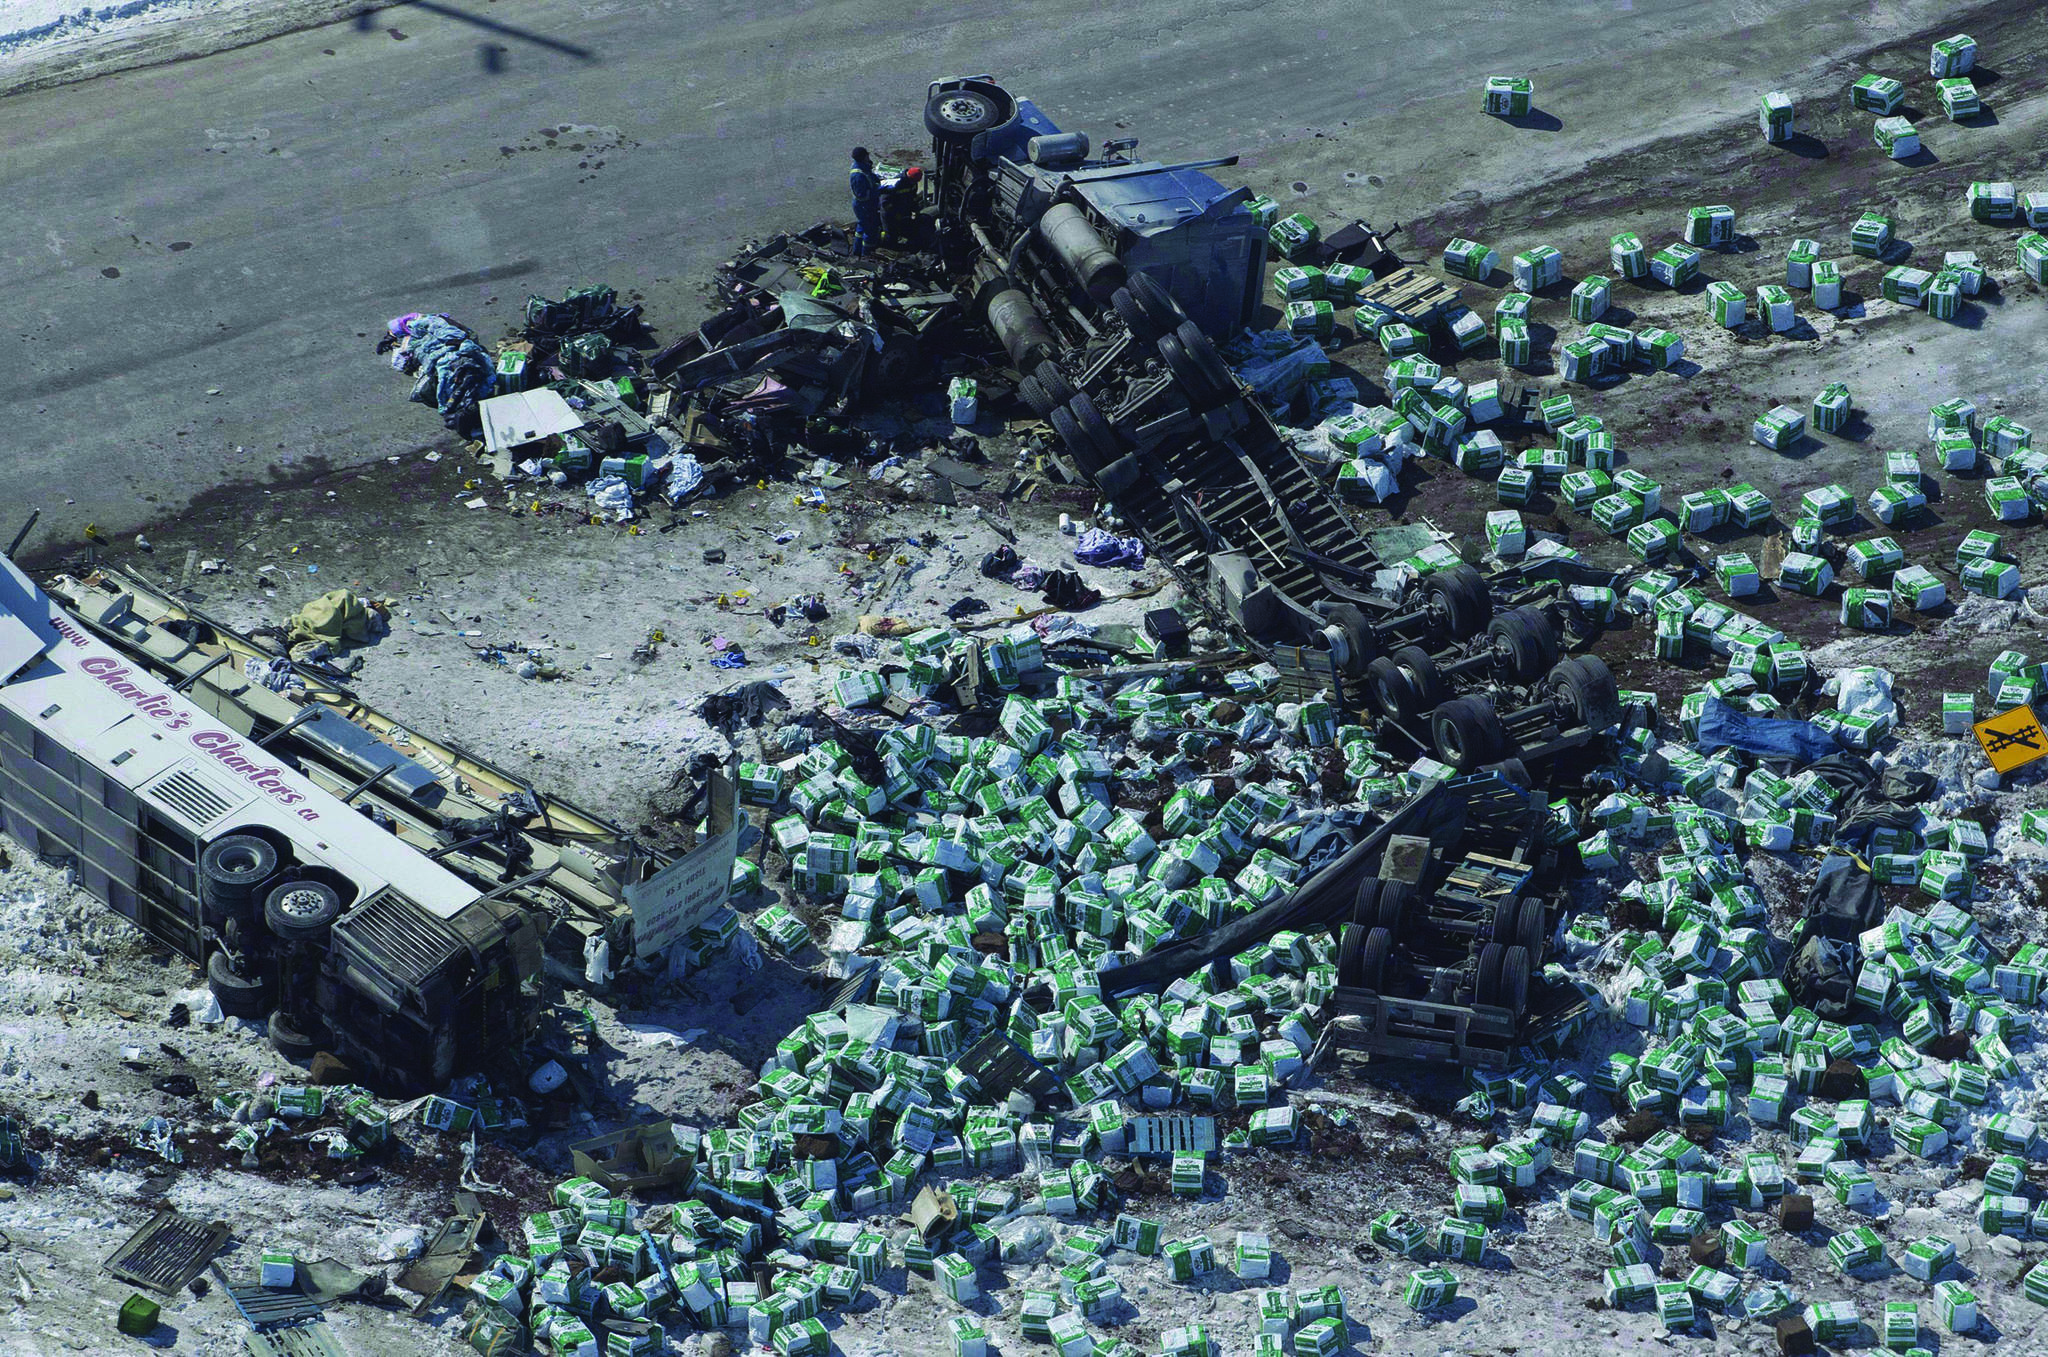 The wreckage of a fatal crash outside of Tisdale, Sask., is seen Saturday, April, 7, 2018. Saskatchewan RCMP say they are preparing to talk to Crown prosecutors about potential charges in the Humboldt Broncos bus crash as its investigation continues. Police say they are still analyzing the data and evidence gathered from the scene of the April 6 collision between the bus and a semi-truck. THE CANADIAN PRESS/Jonathan Hayward